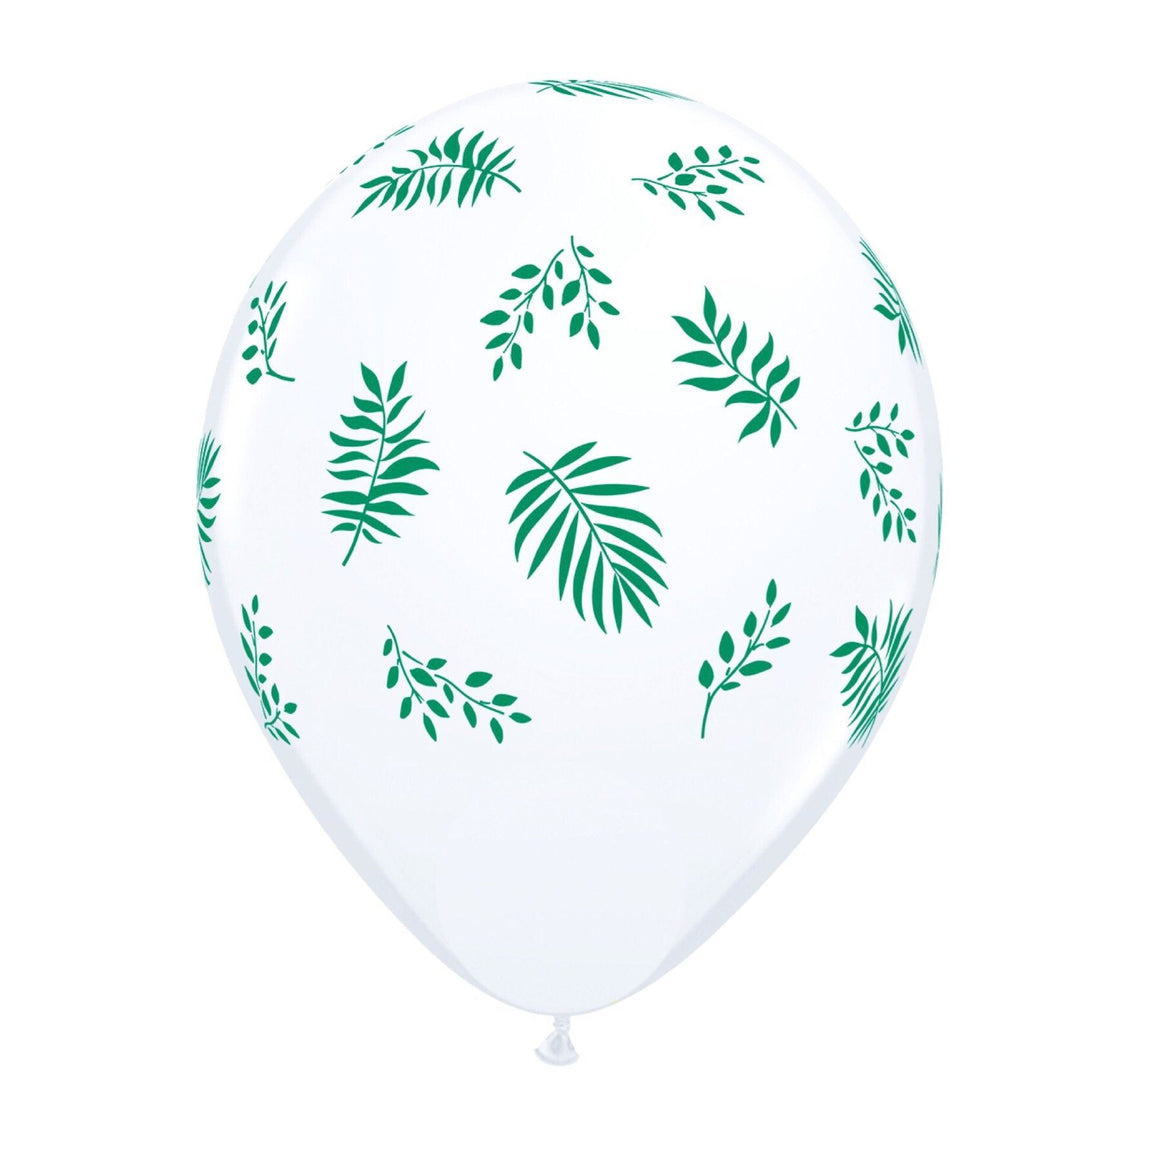 "BALLOON BAR - TROPICAL GREENERY 11"", Balloons, QUALATEX - Bon + Co. Party Studio"